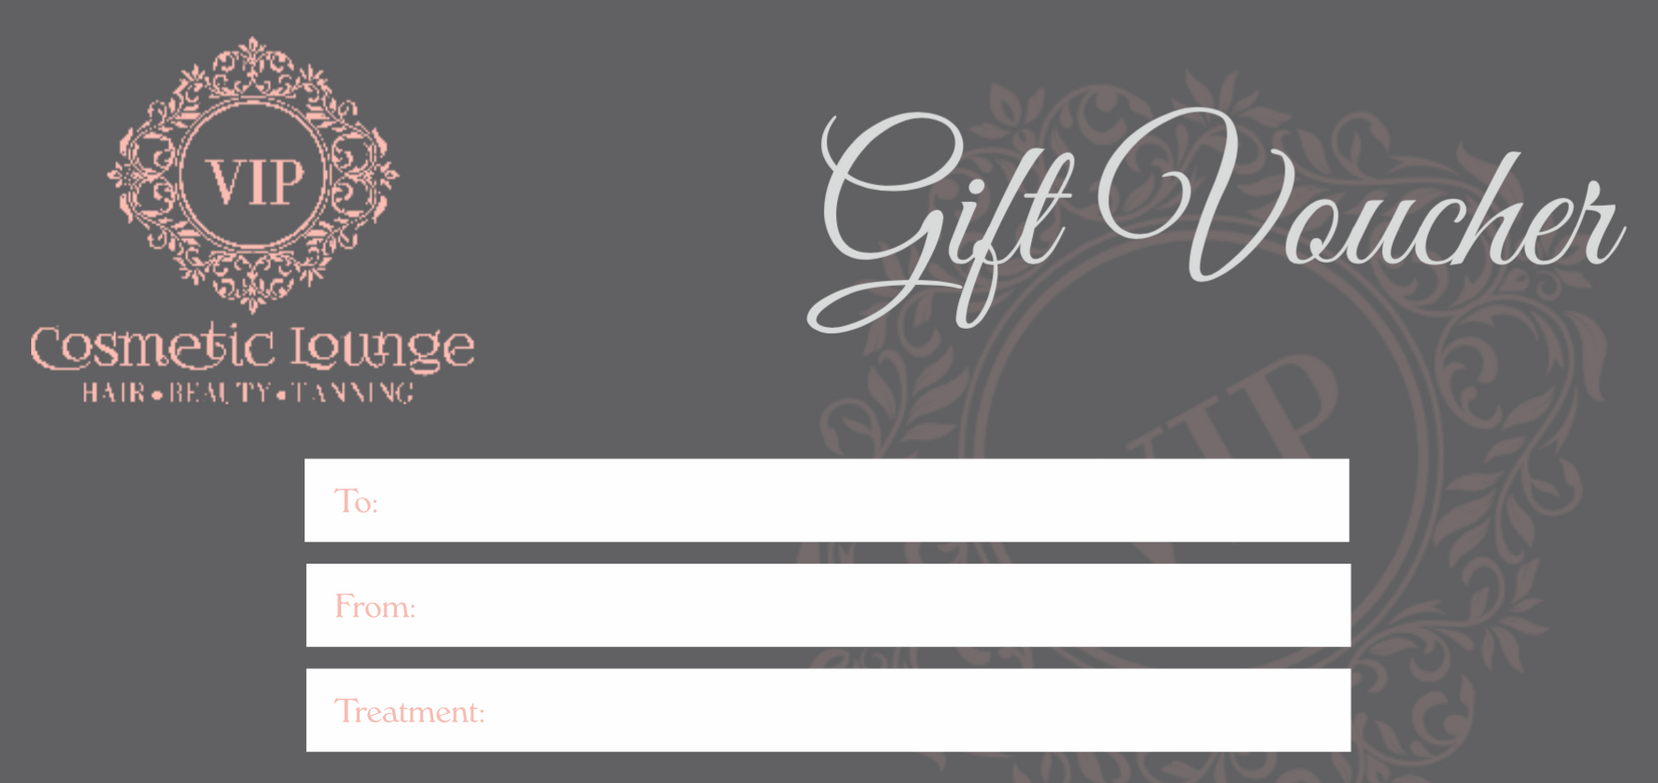 Full cosmetic beauty treatment gift voucher